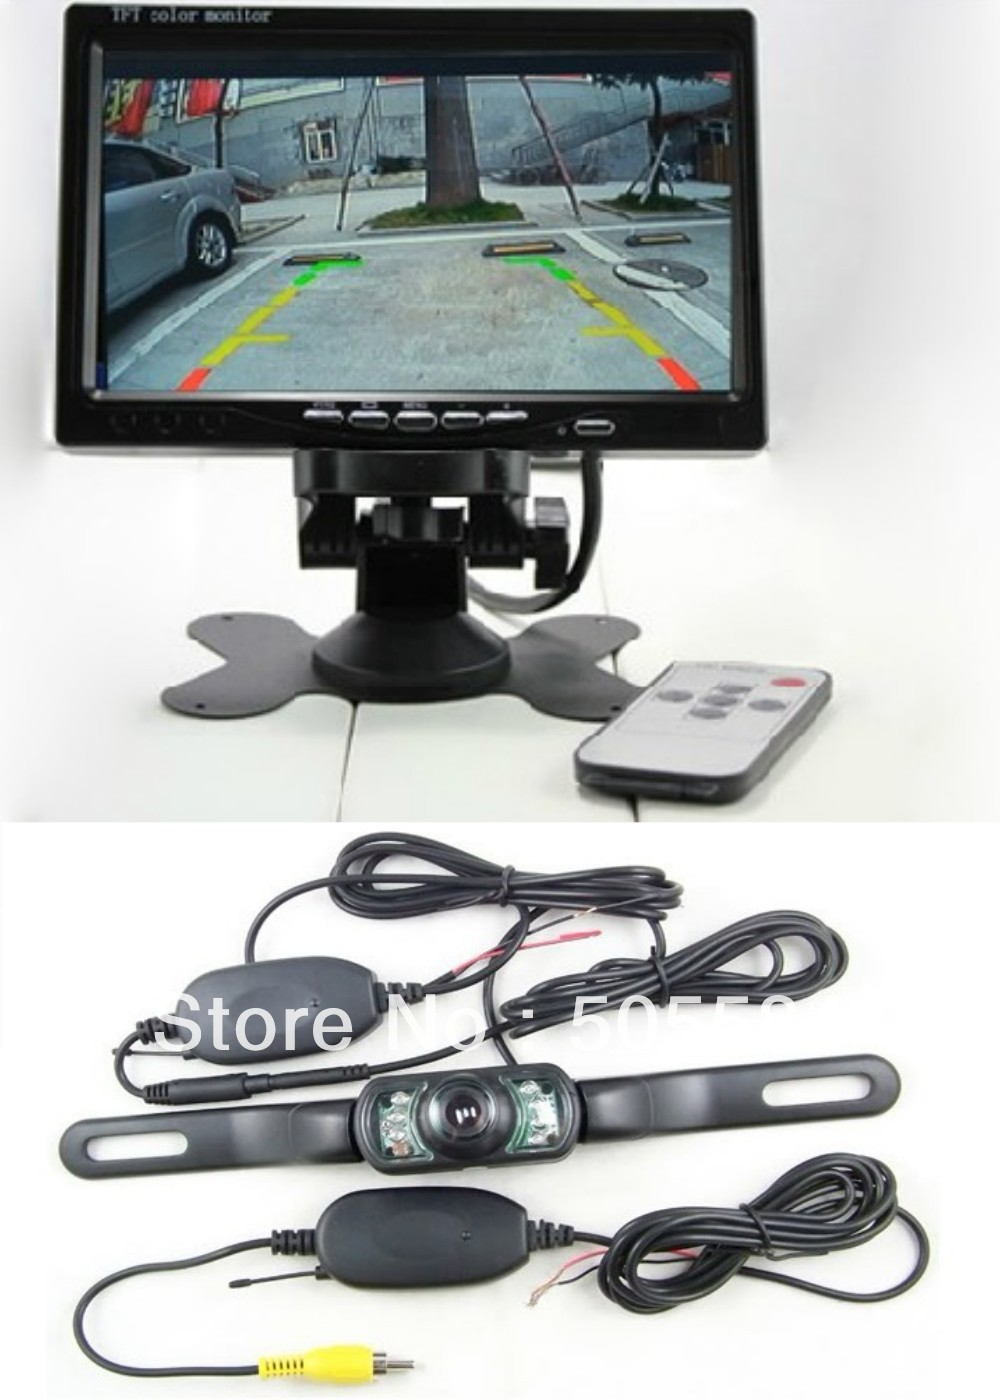 """Wireless Rear camera Car kit with 7"""" LCD Monitor+2.4g transmitter receiver+ Night vision for Rearview Reverse Parking Assistance(China (Mainland))"""